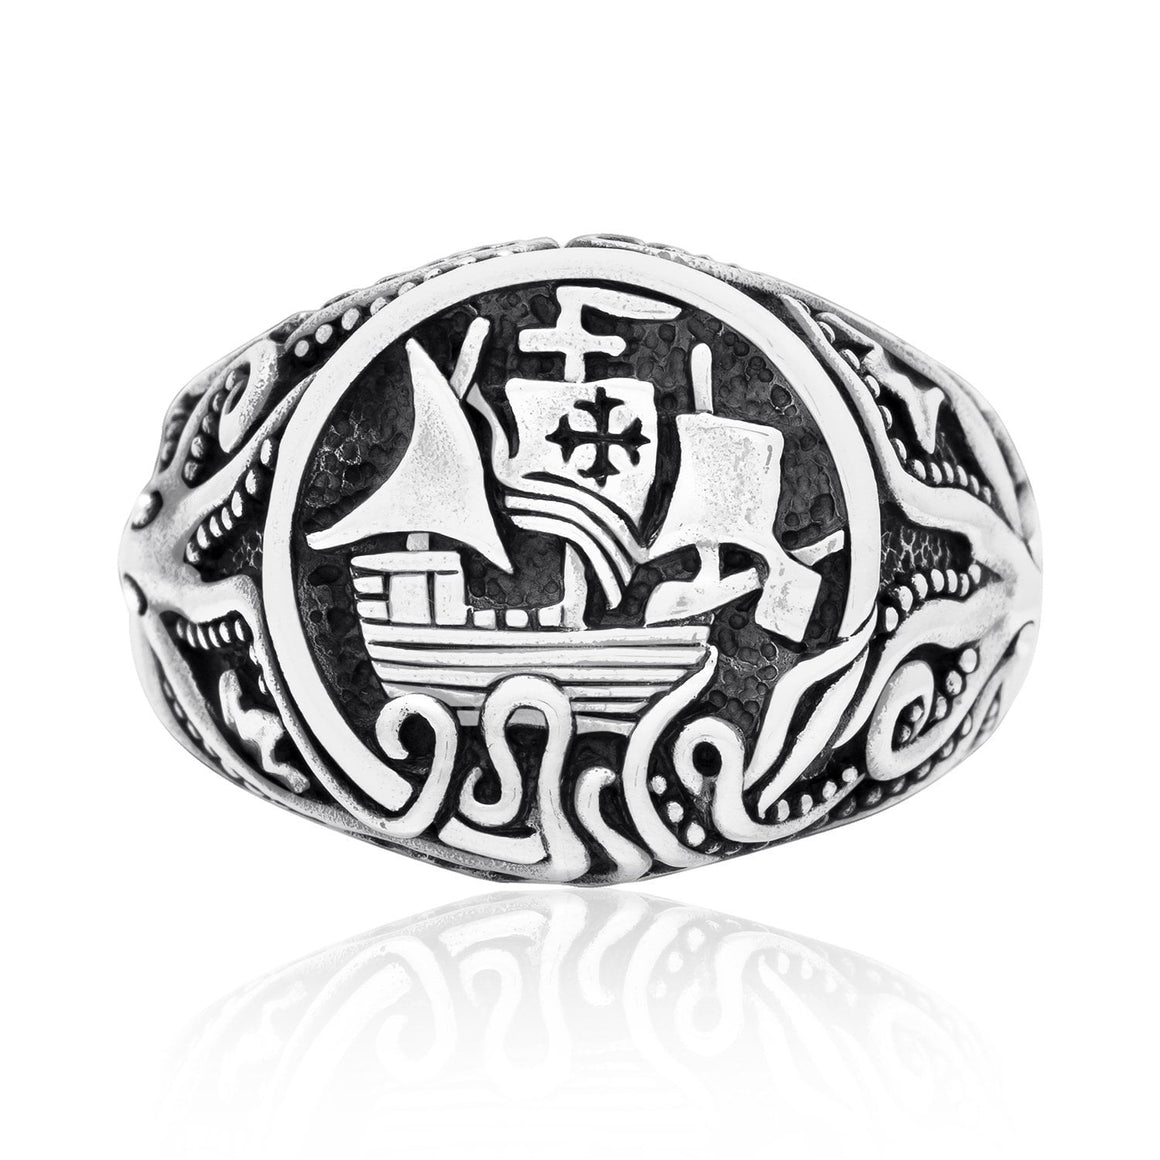 925 Sterling Silver Viking Drakkar Ship with Kraken Monster Ring - SilverMania925